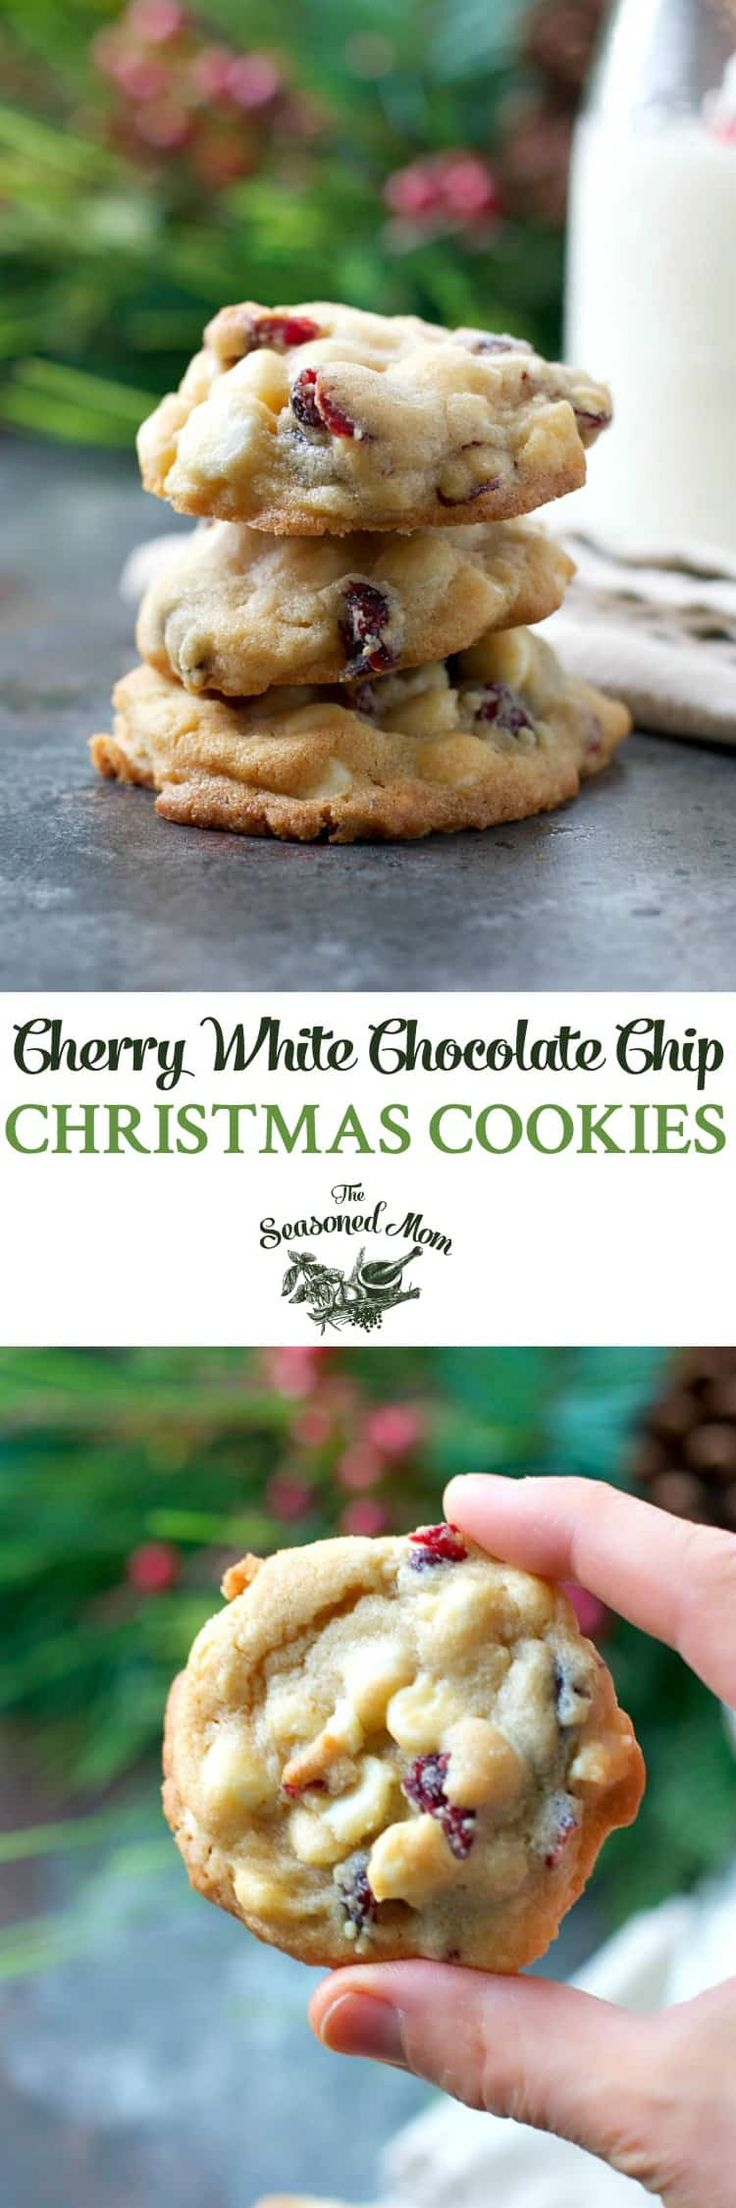 Cherry White Chocolate Chip Cookies by the Seasoned Mom | The Best Ever Christmas Cookies | Dozens and dozens of delicious Christmas Cookie Recipe ideas!